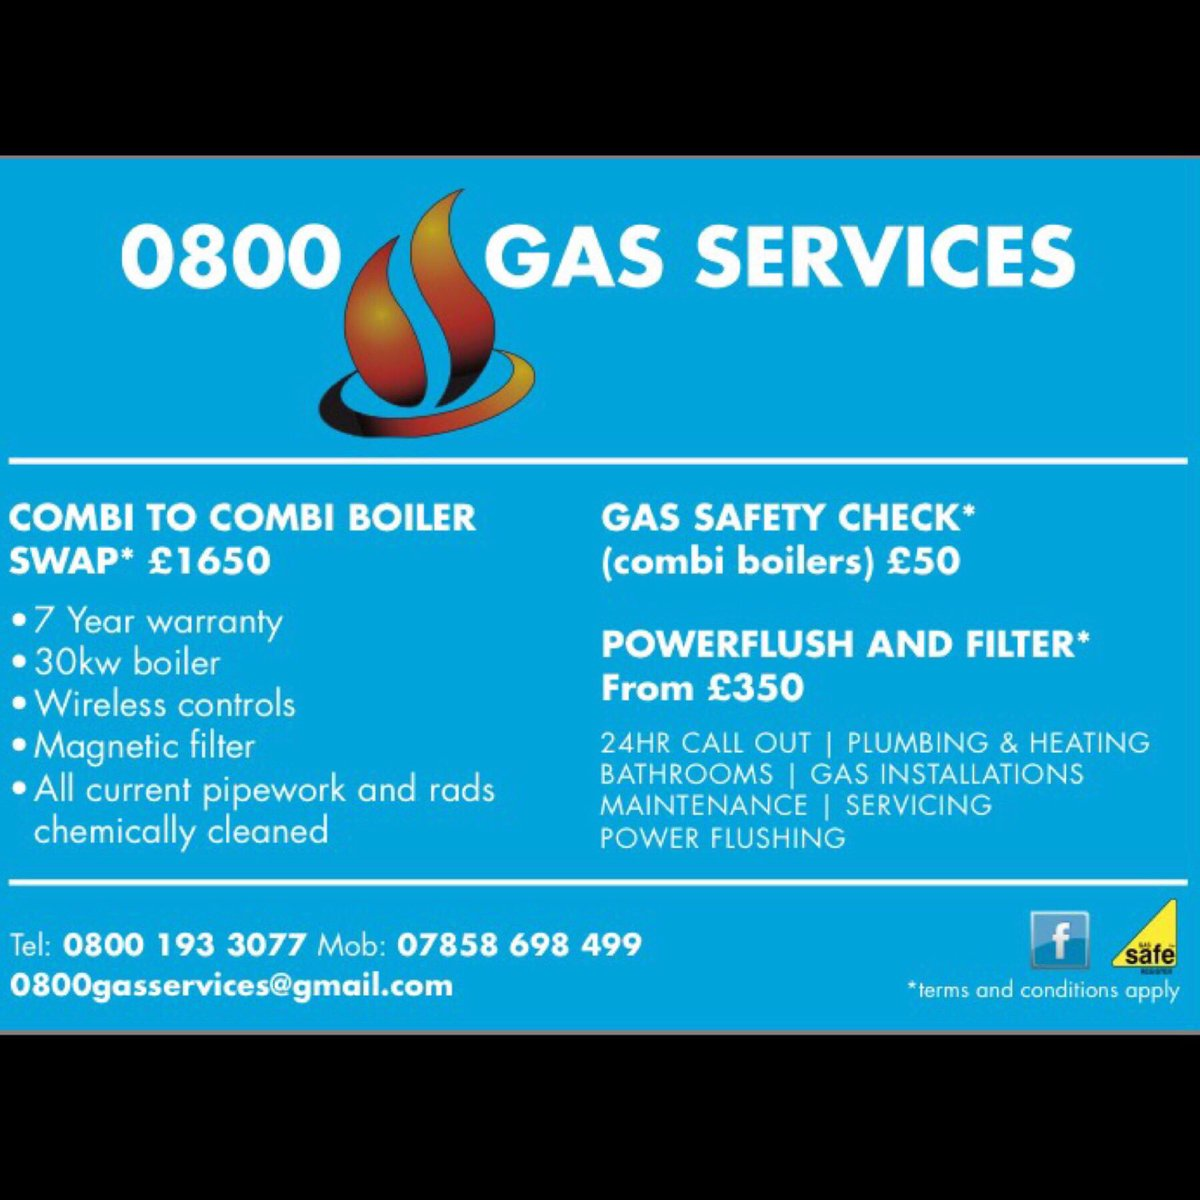 0800 Gas Services (@0800gasservices) | Twitter